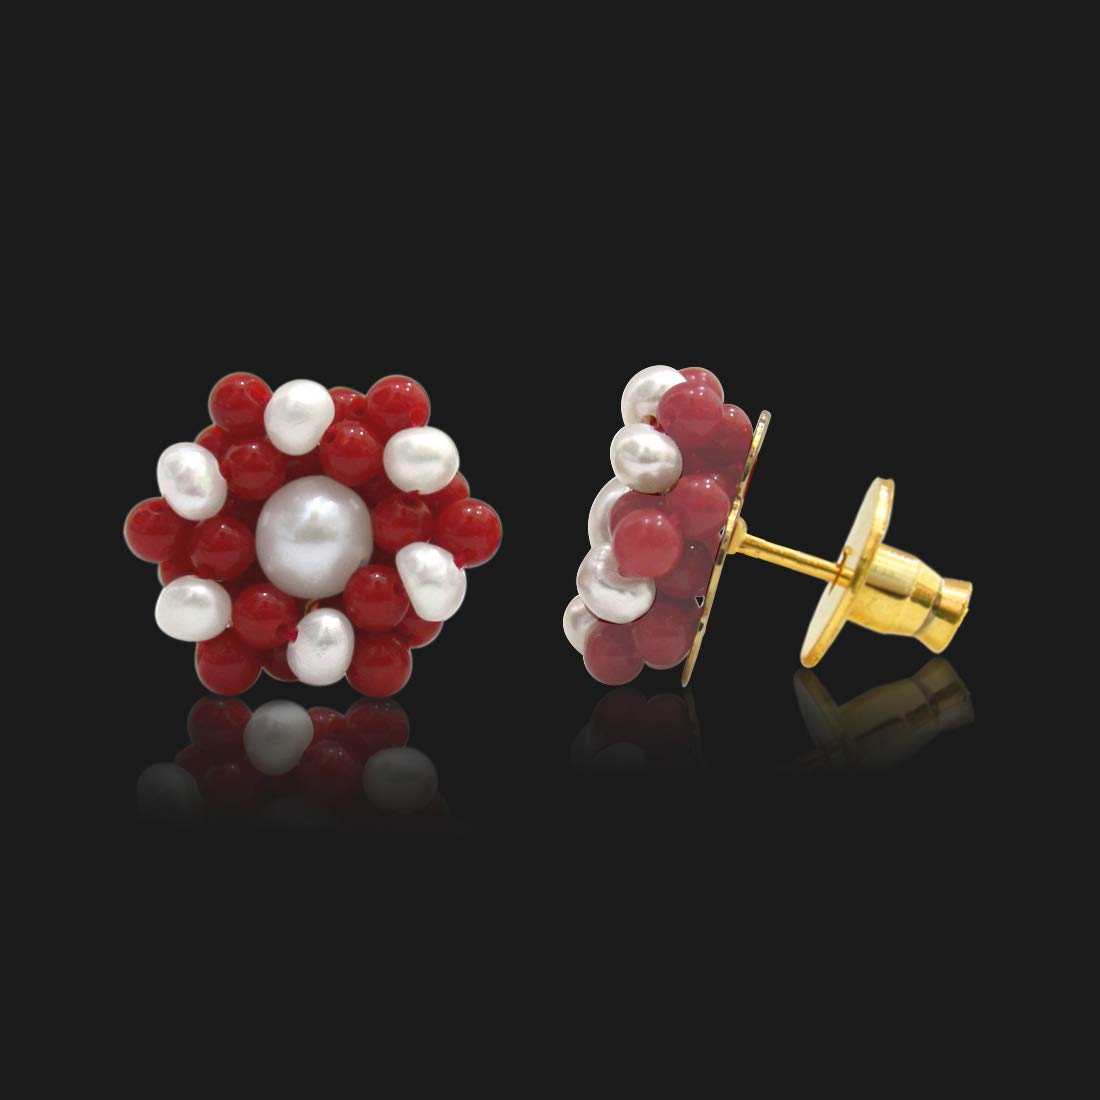 Real Freshwater Pearl & Red Coral Beads Kuda Jodi Earrings for Women (SE108)